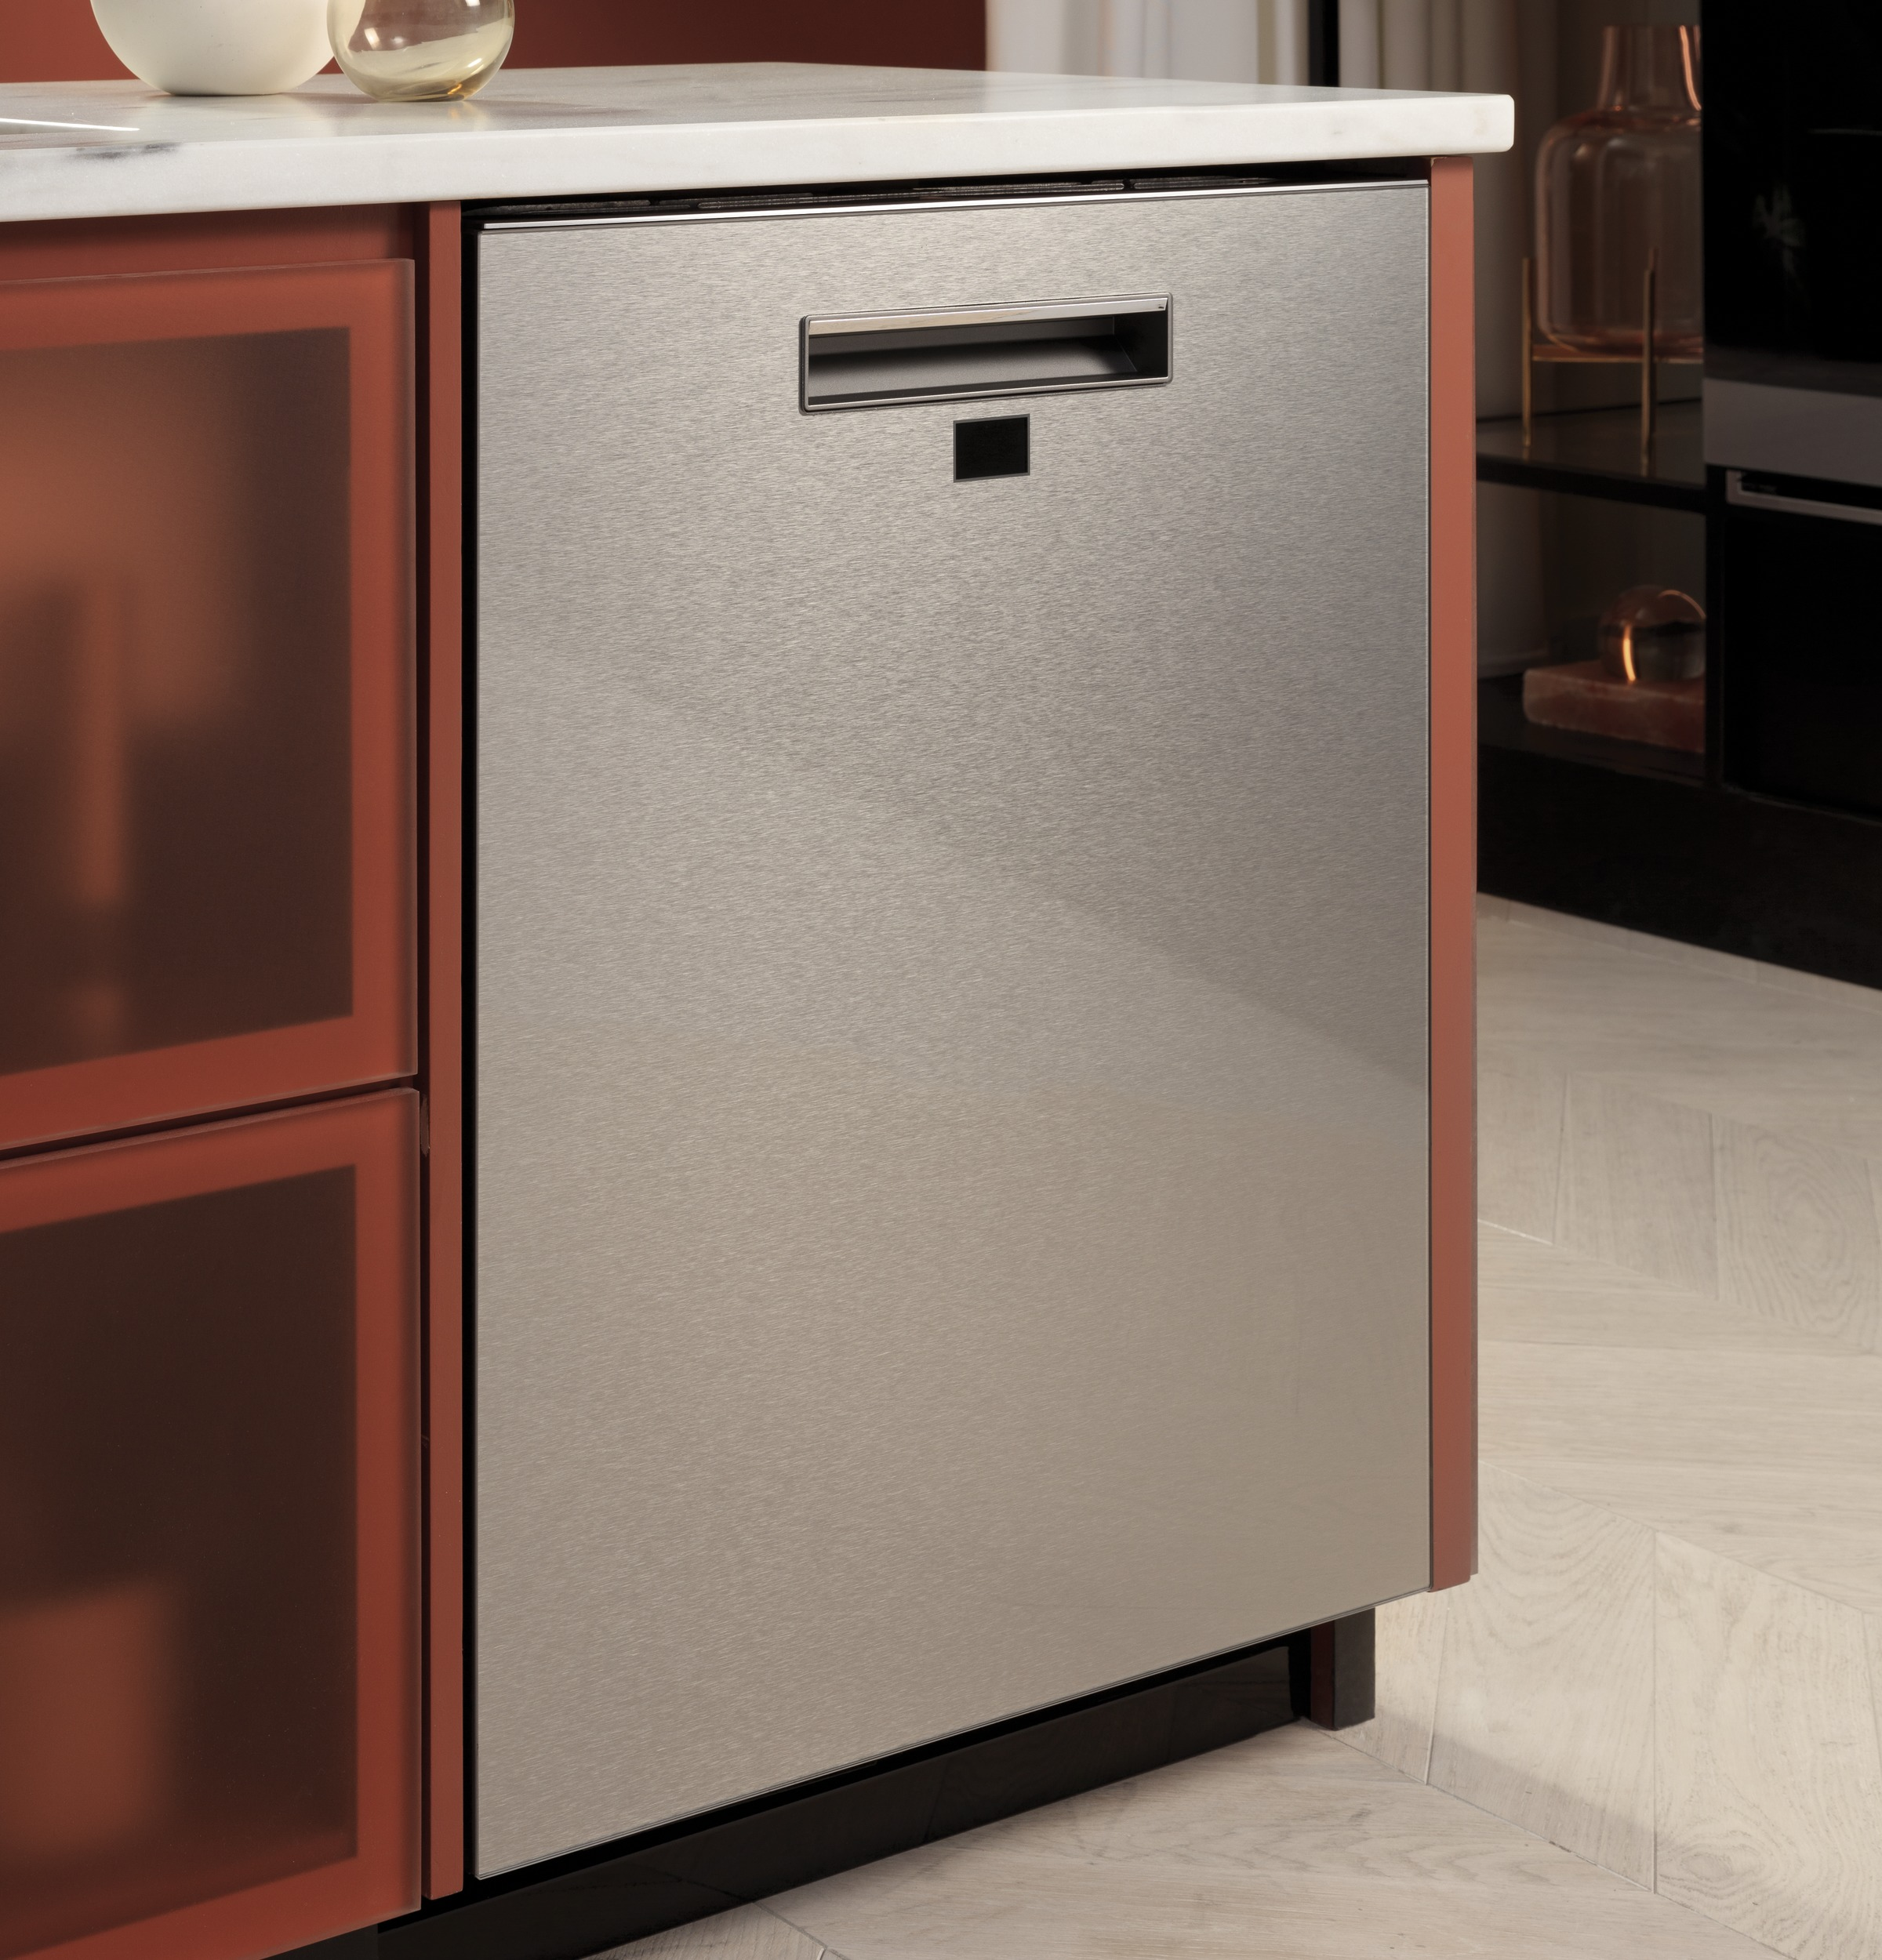 Model: CDT875M5NS5 | Cafe Café™ Smart Stainless Steel Interior Dishwasher with Sanitize and Ultra Wash & Dual Convection Ultra Dry in Platinum Glass